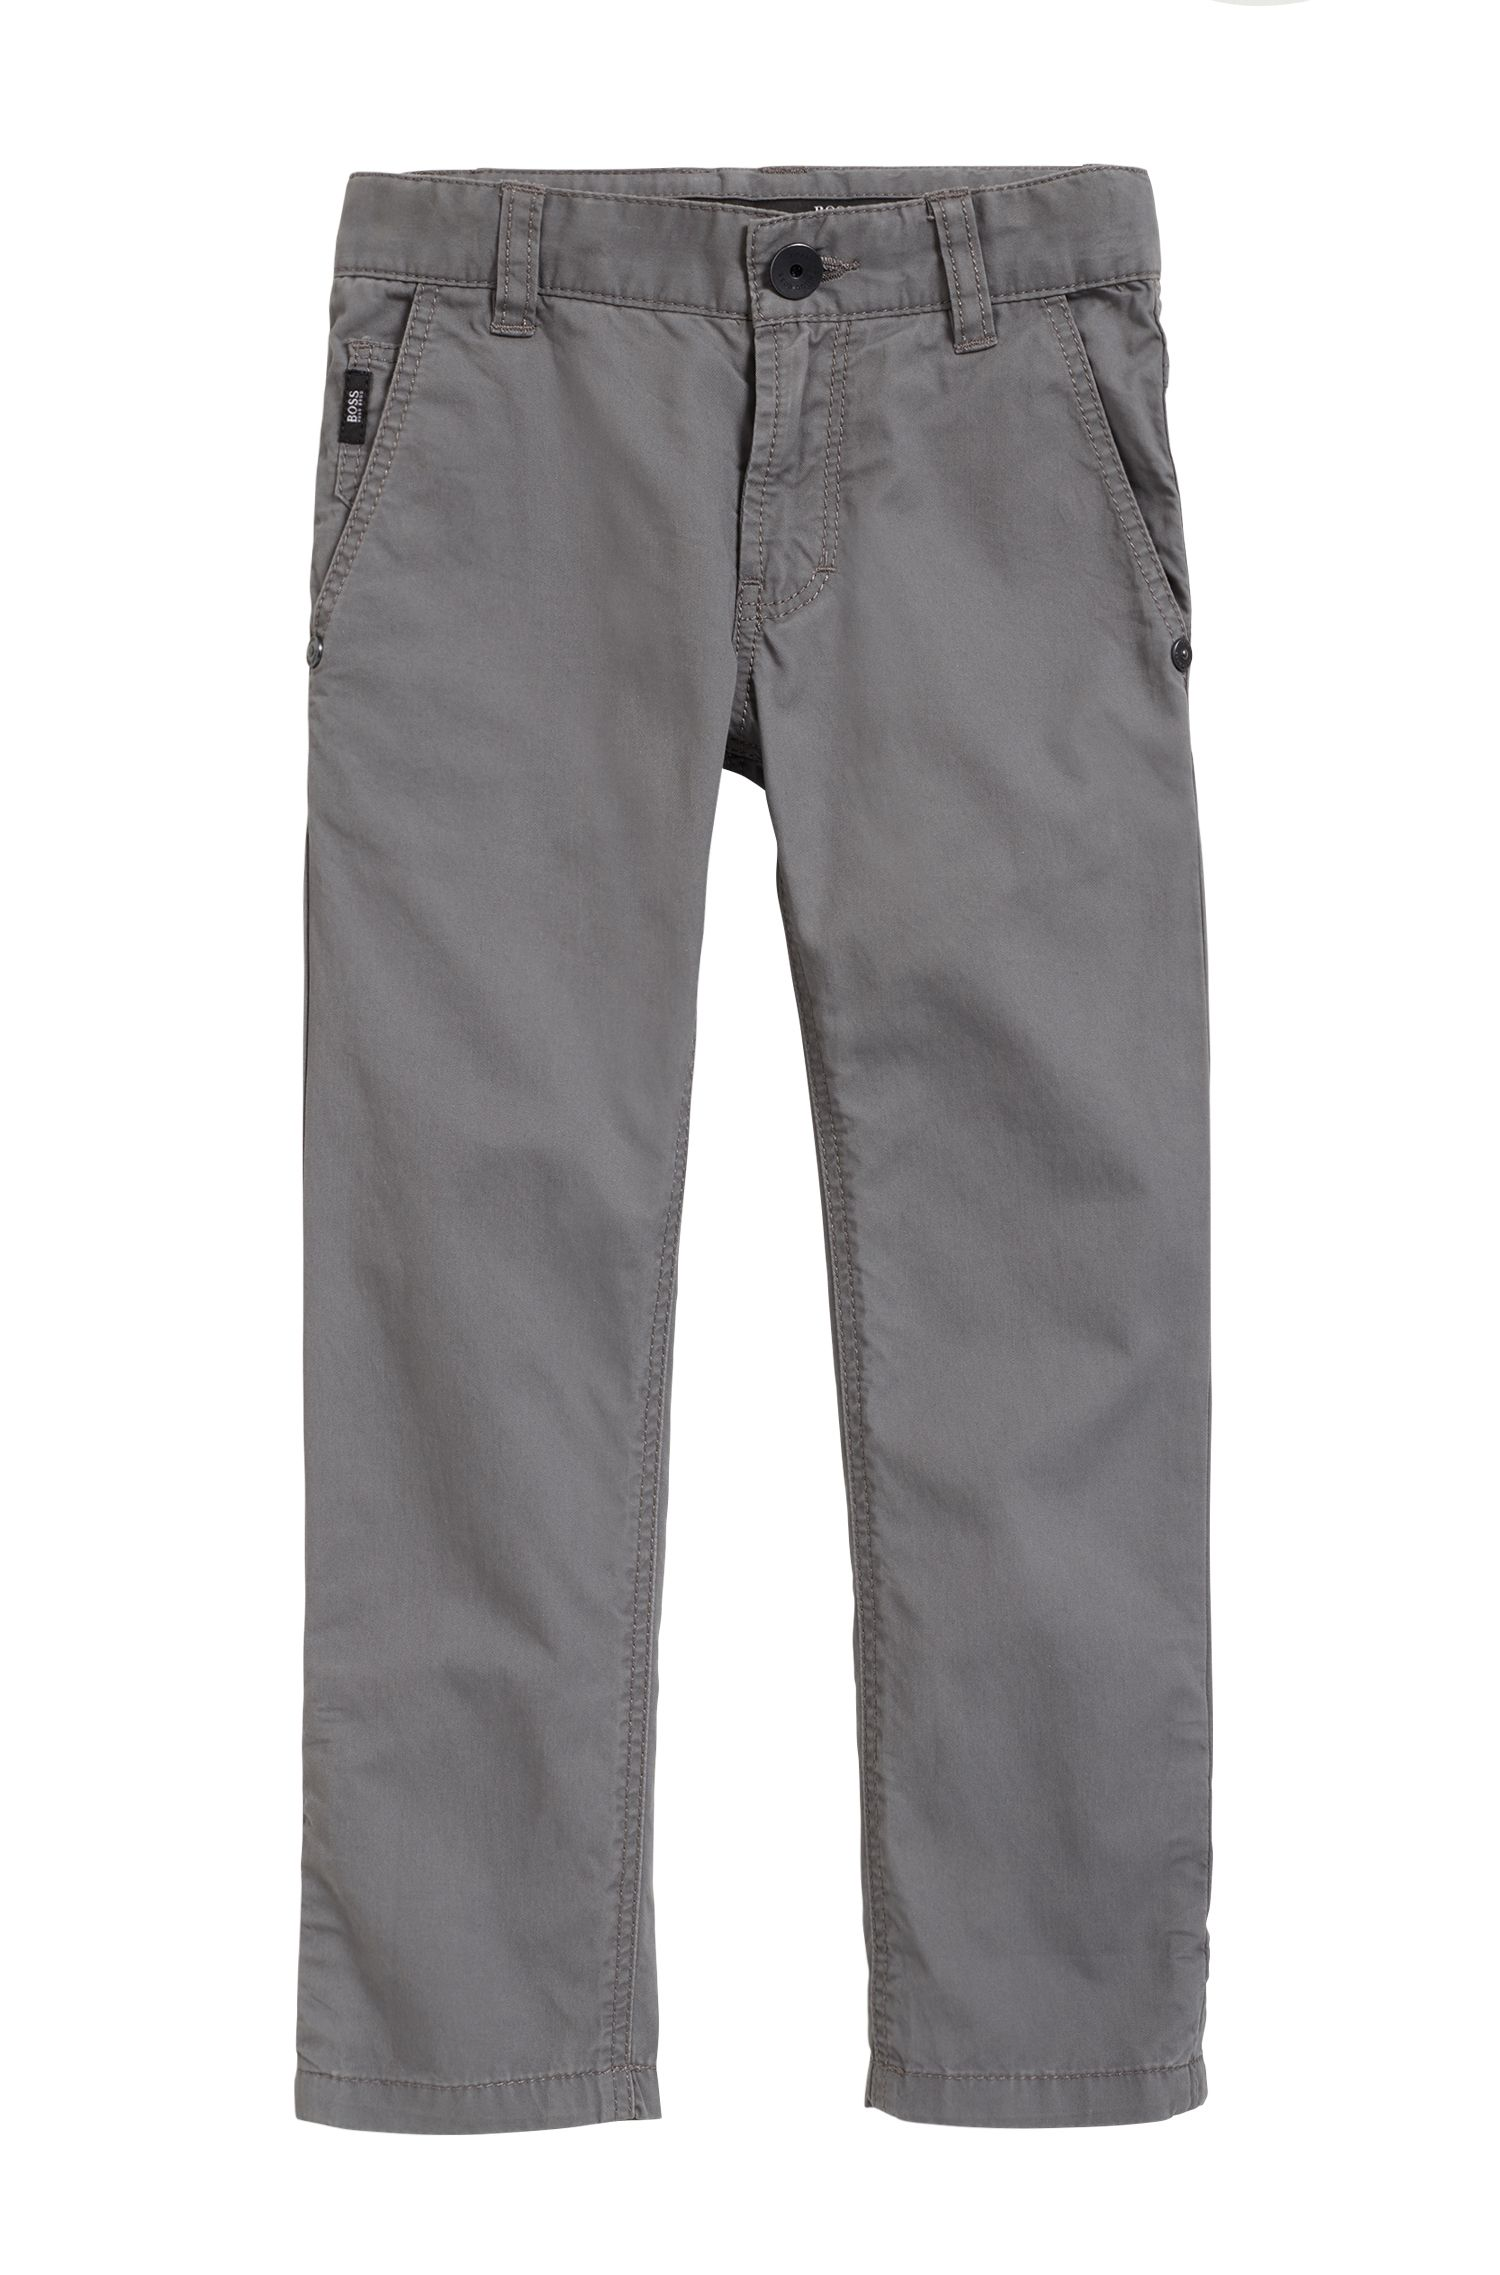 Kids' casual trousers in cotton twill with detailed turn-ups